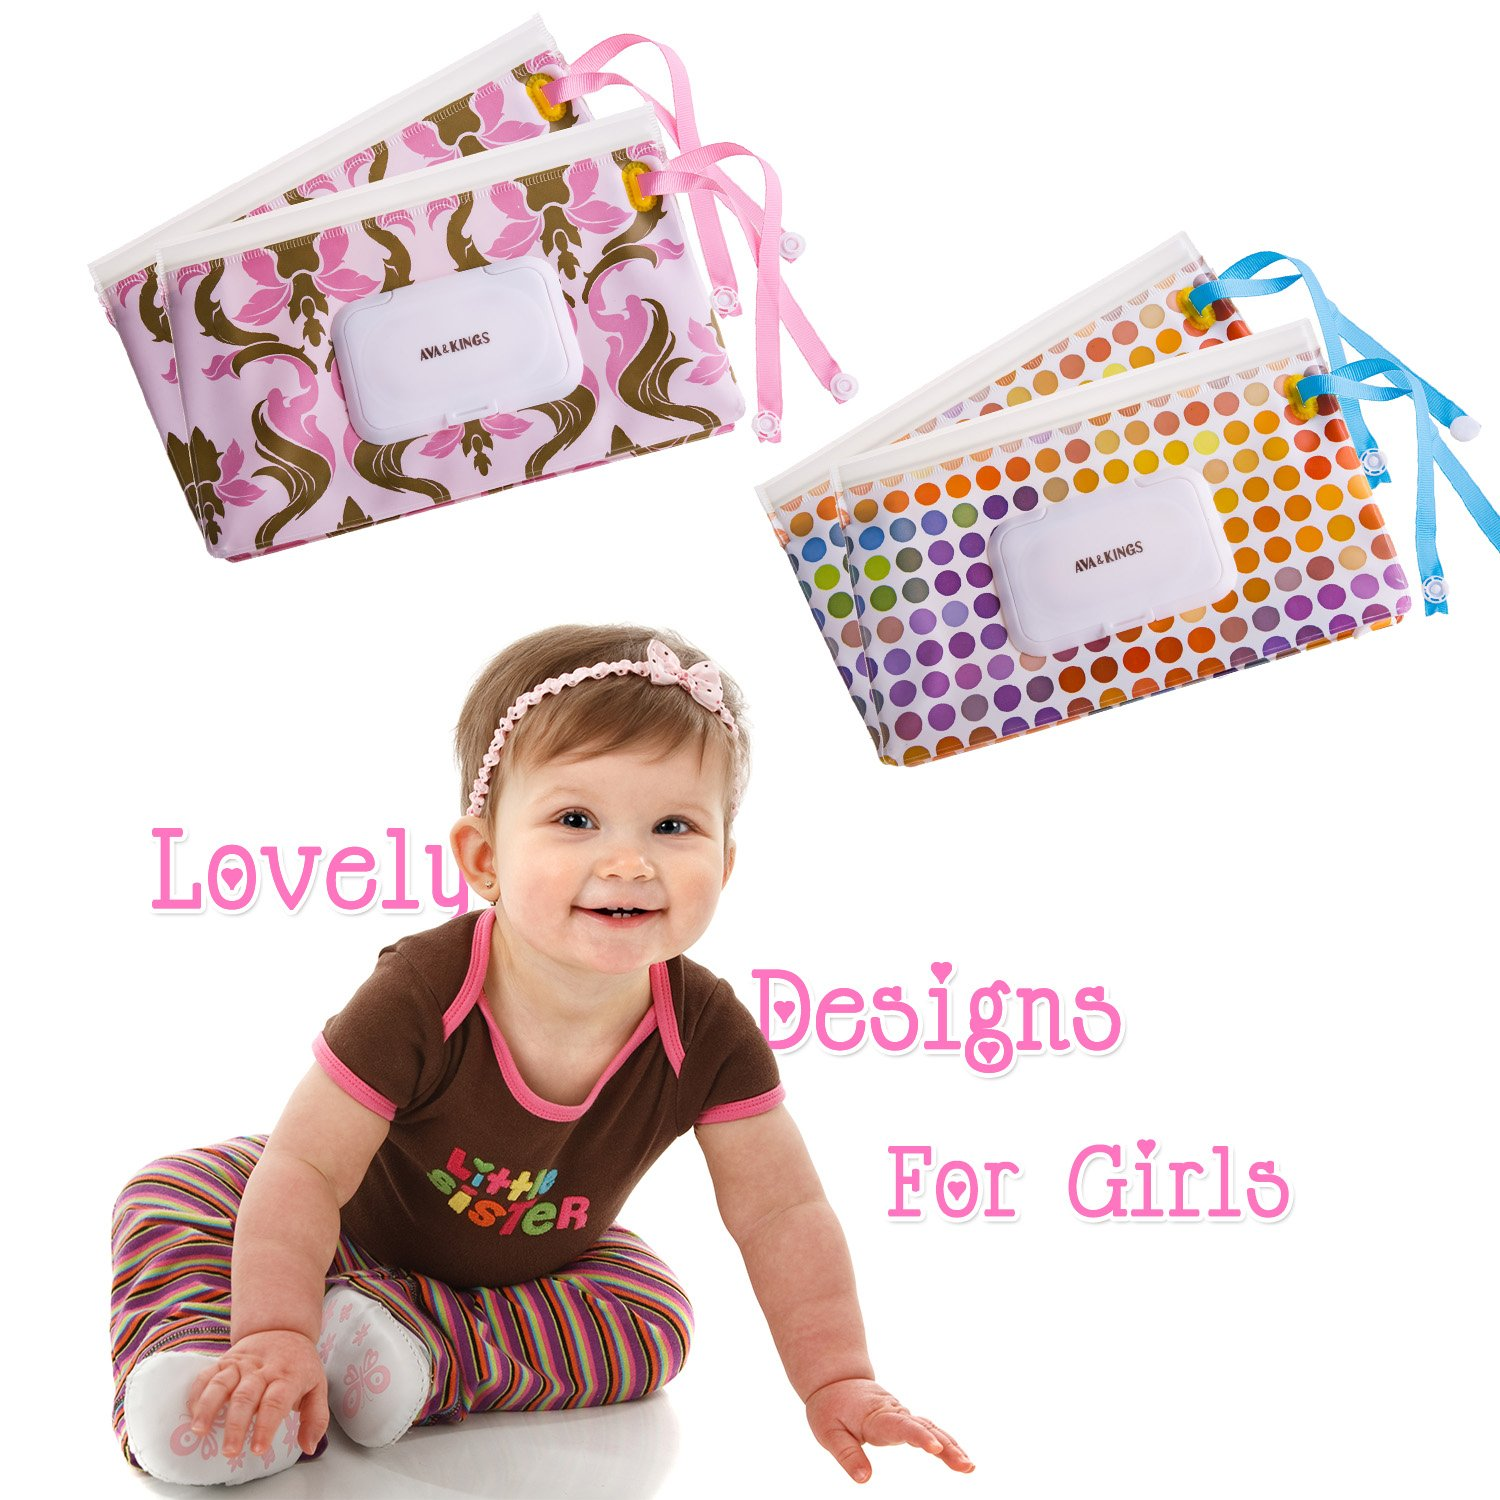 New /& Improved Design Set 2 Ava /& Kings 4pc Baby Wipe Carrying Travel Case Holder Dispenser Refillable Moist Diaper Wet Wipe Clutch w//Button Strap Unisex Variety Pack White Arrow /& Gray Pixel